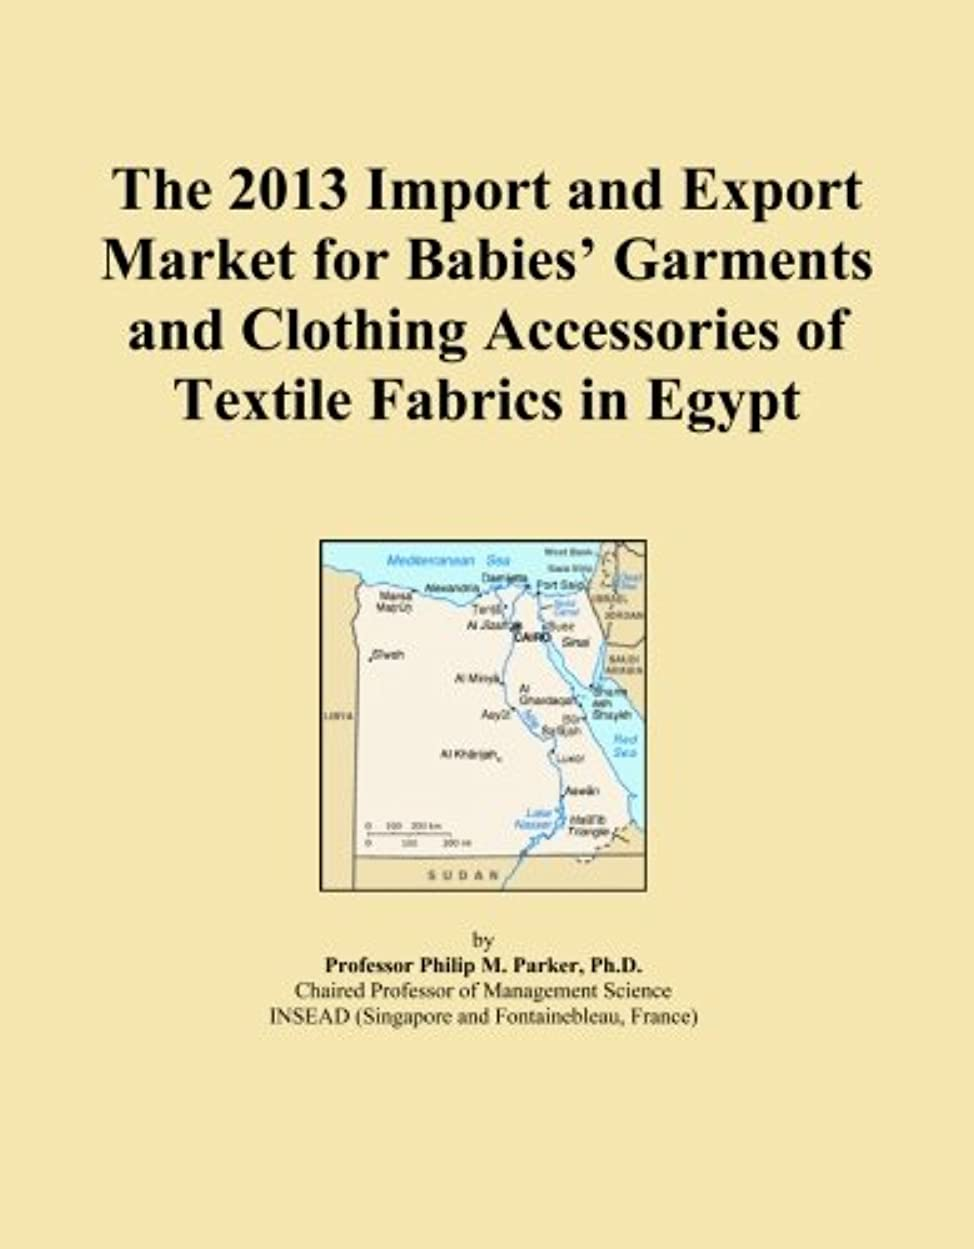 The 2013 Import and Export Market for Babies' Garments and Clothing Accessories of Textile Fabrics in Egypt